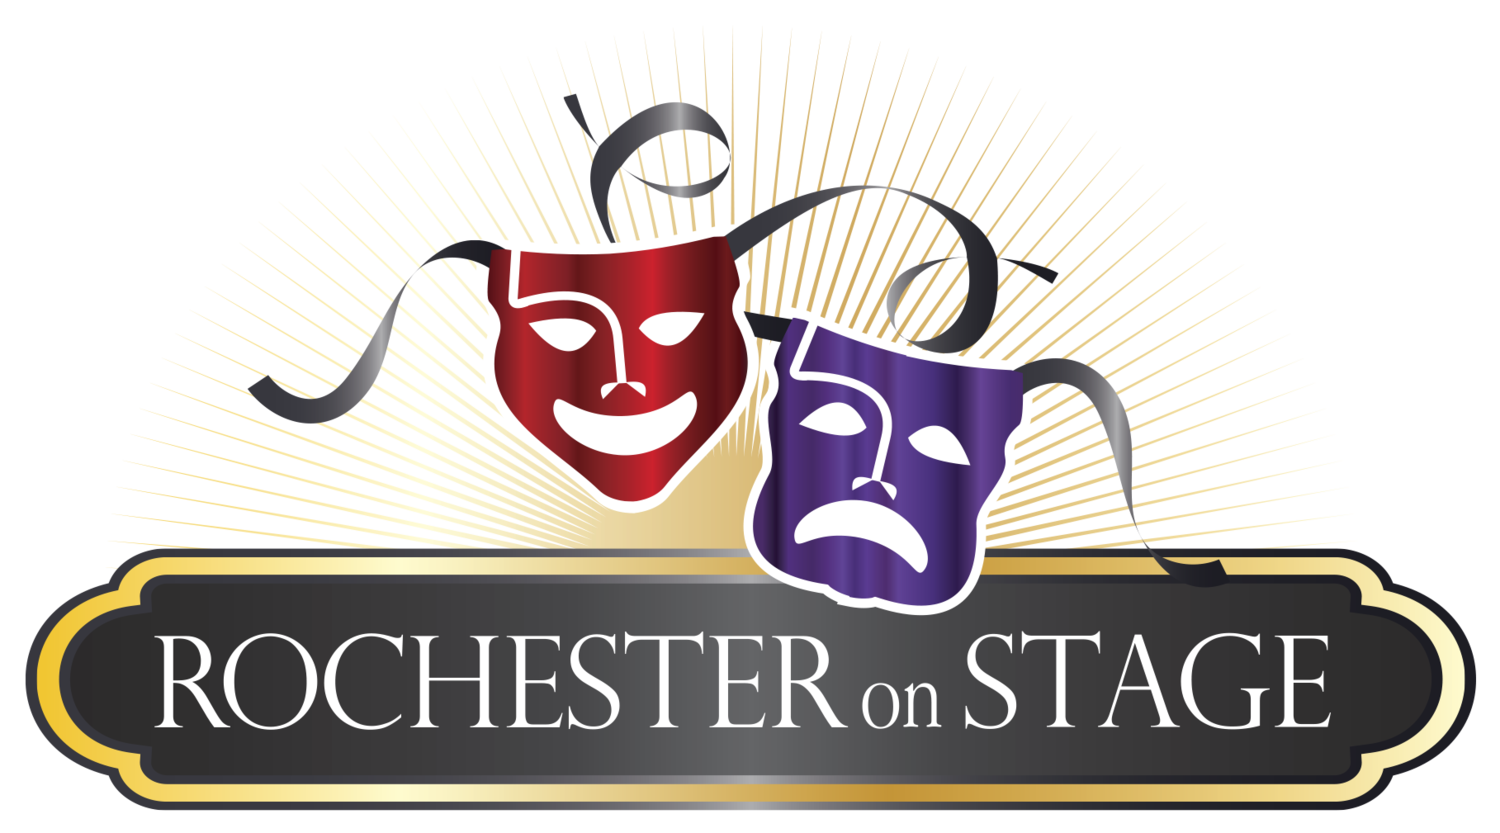 RochesterOnStage